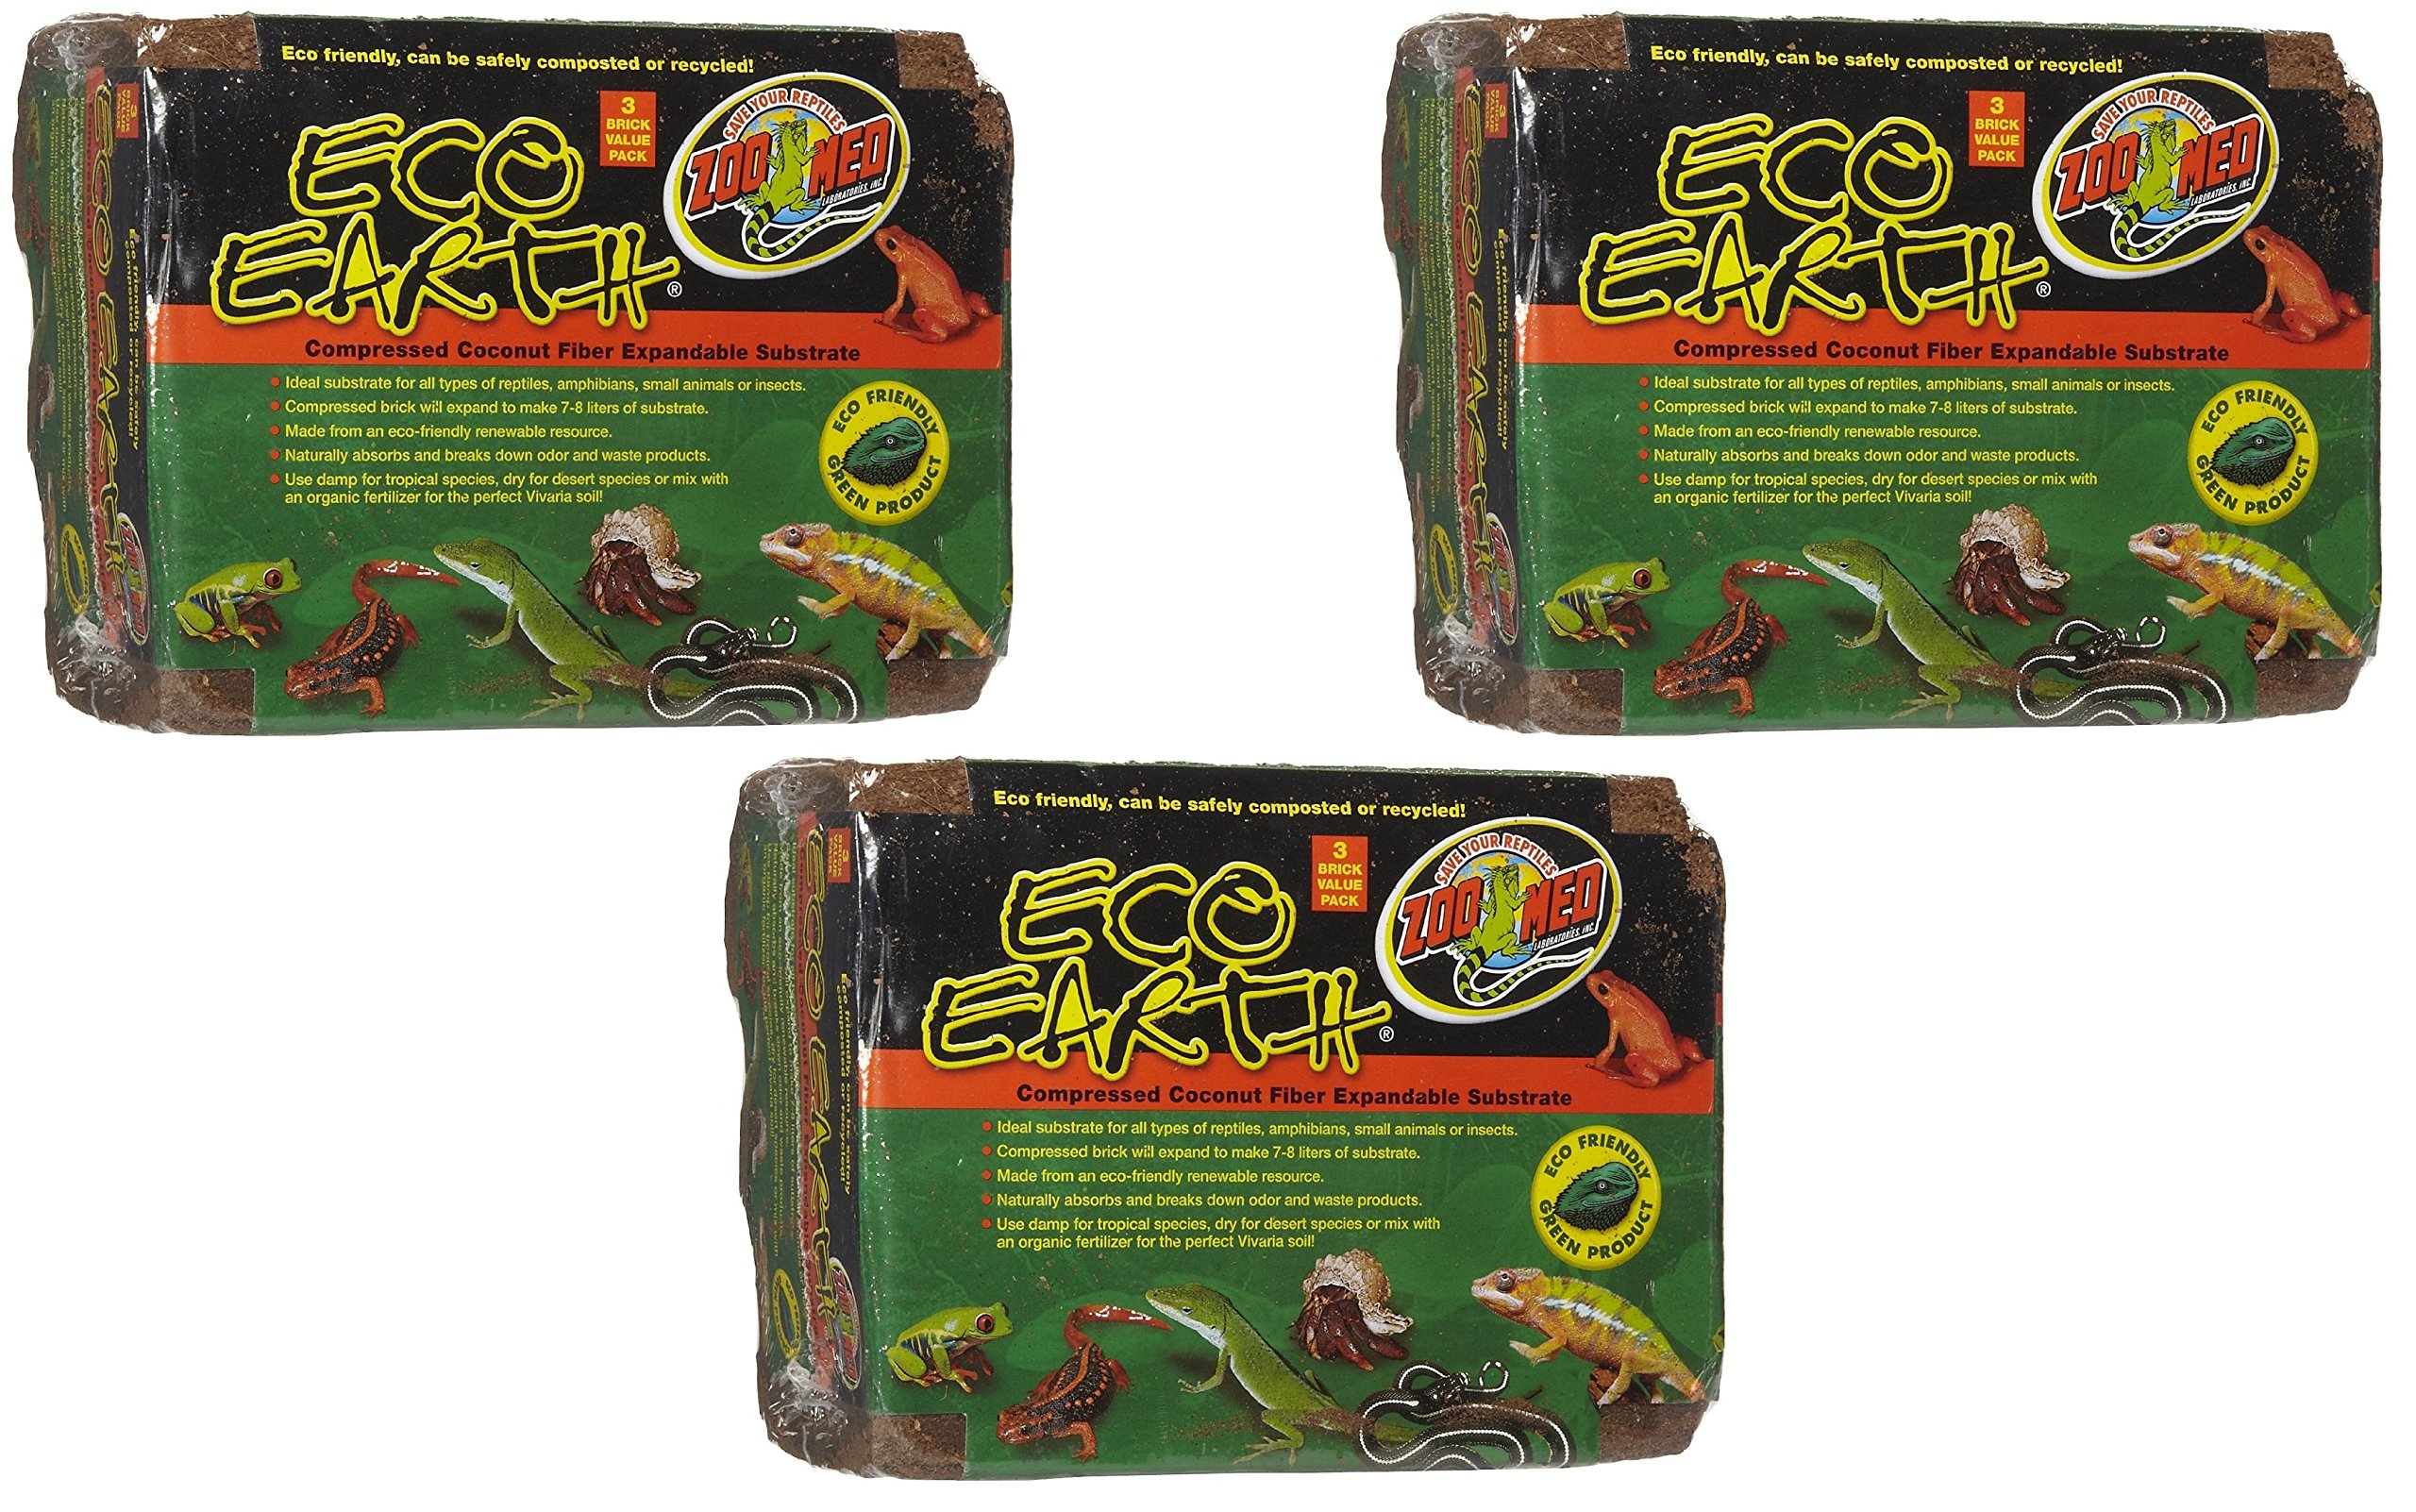 Zoo Med Eco Earth Compressed Coconut Fiber Substrate, 9 Bricks